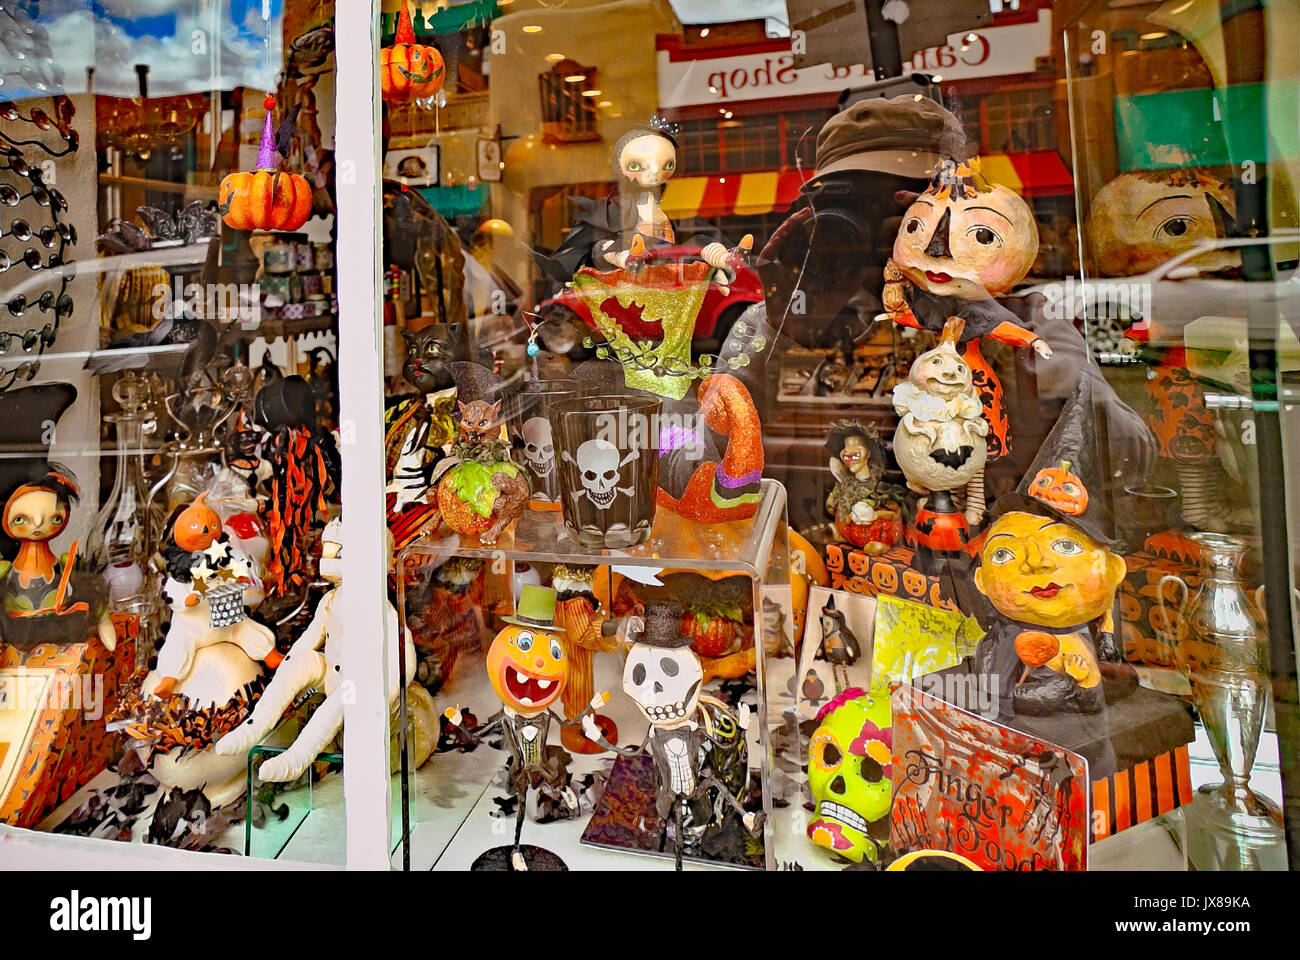 Window display of toys and mask in Santa Fe, New Mexico. Creative and amusing ideas, based on Mexican Folk Art - Stock Image